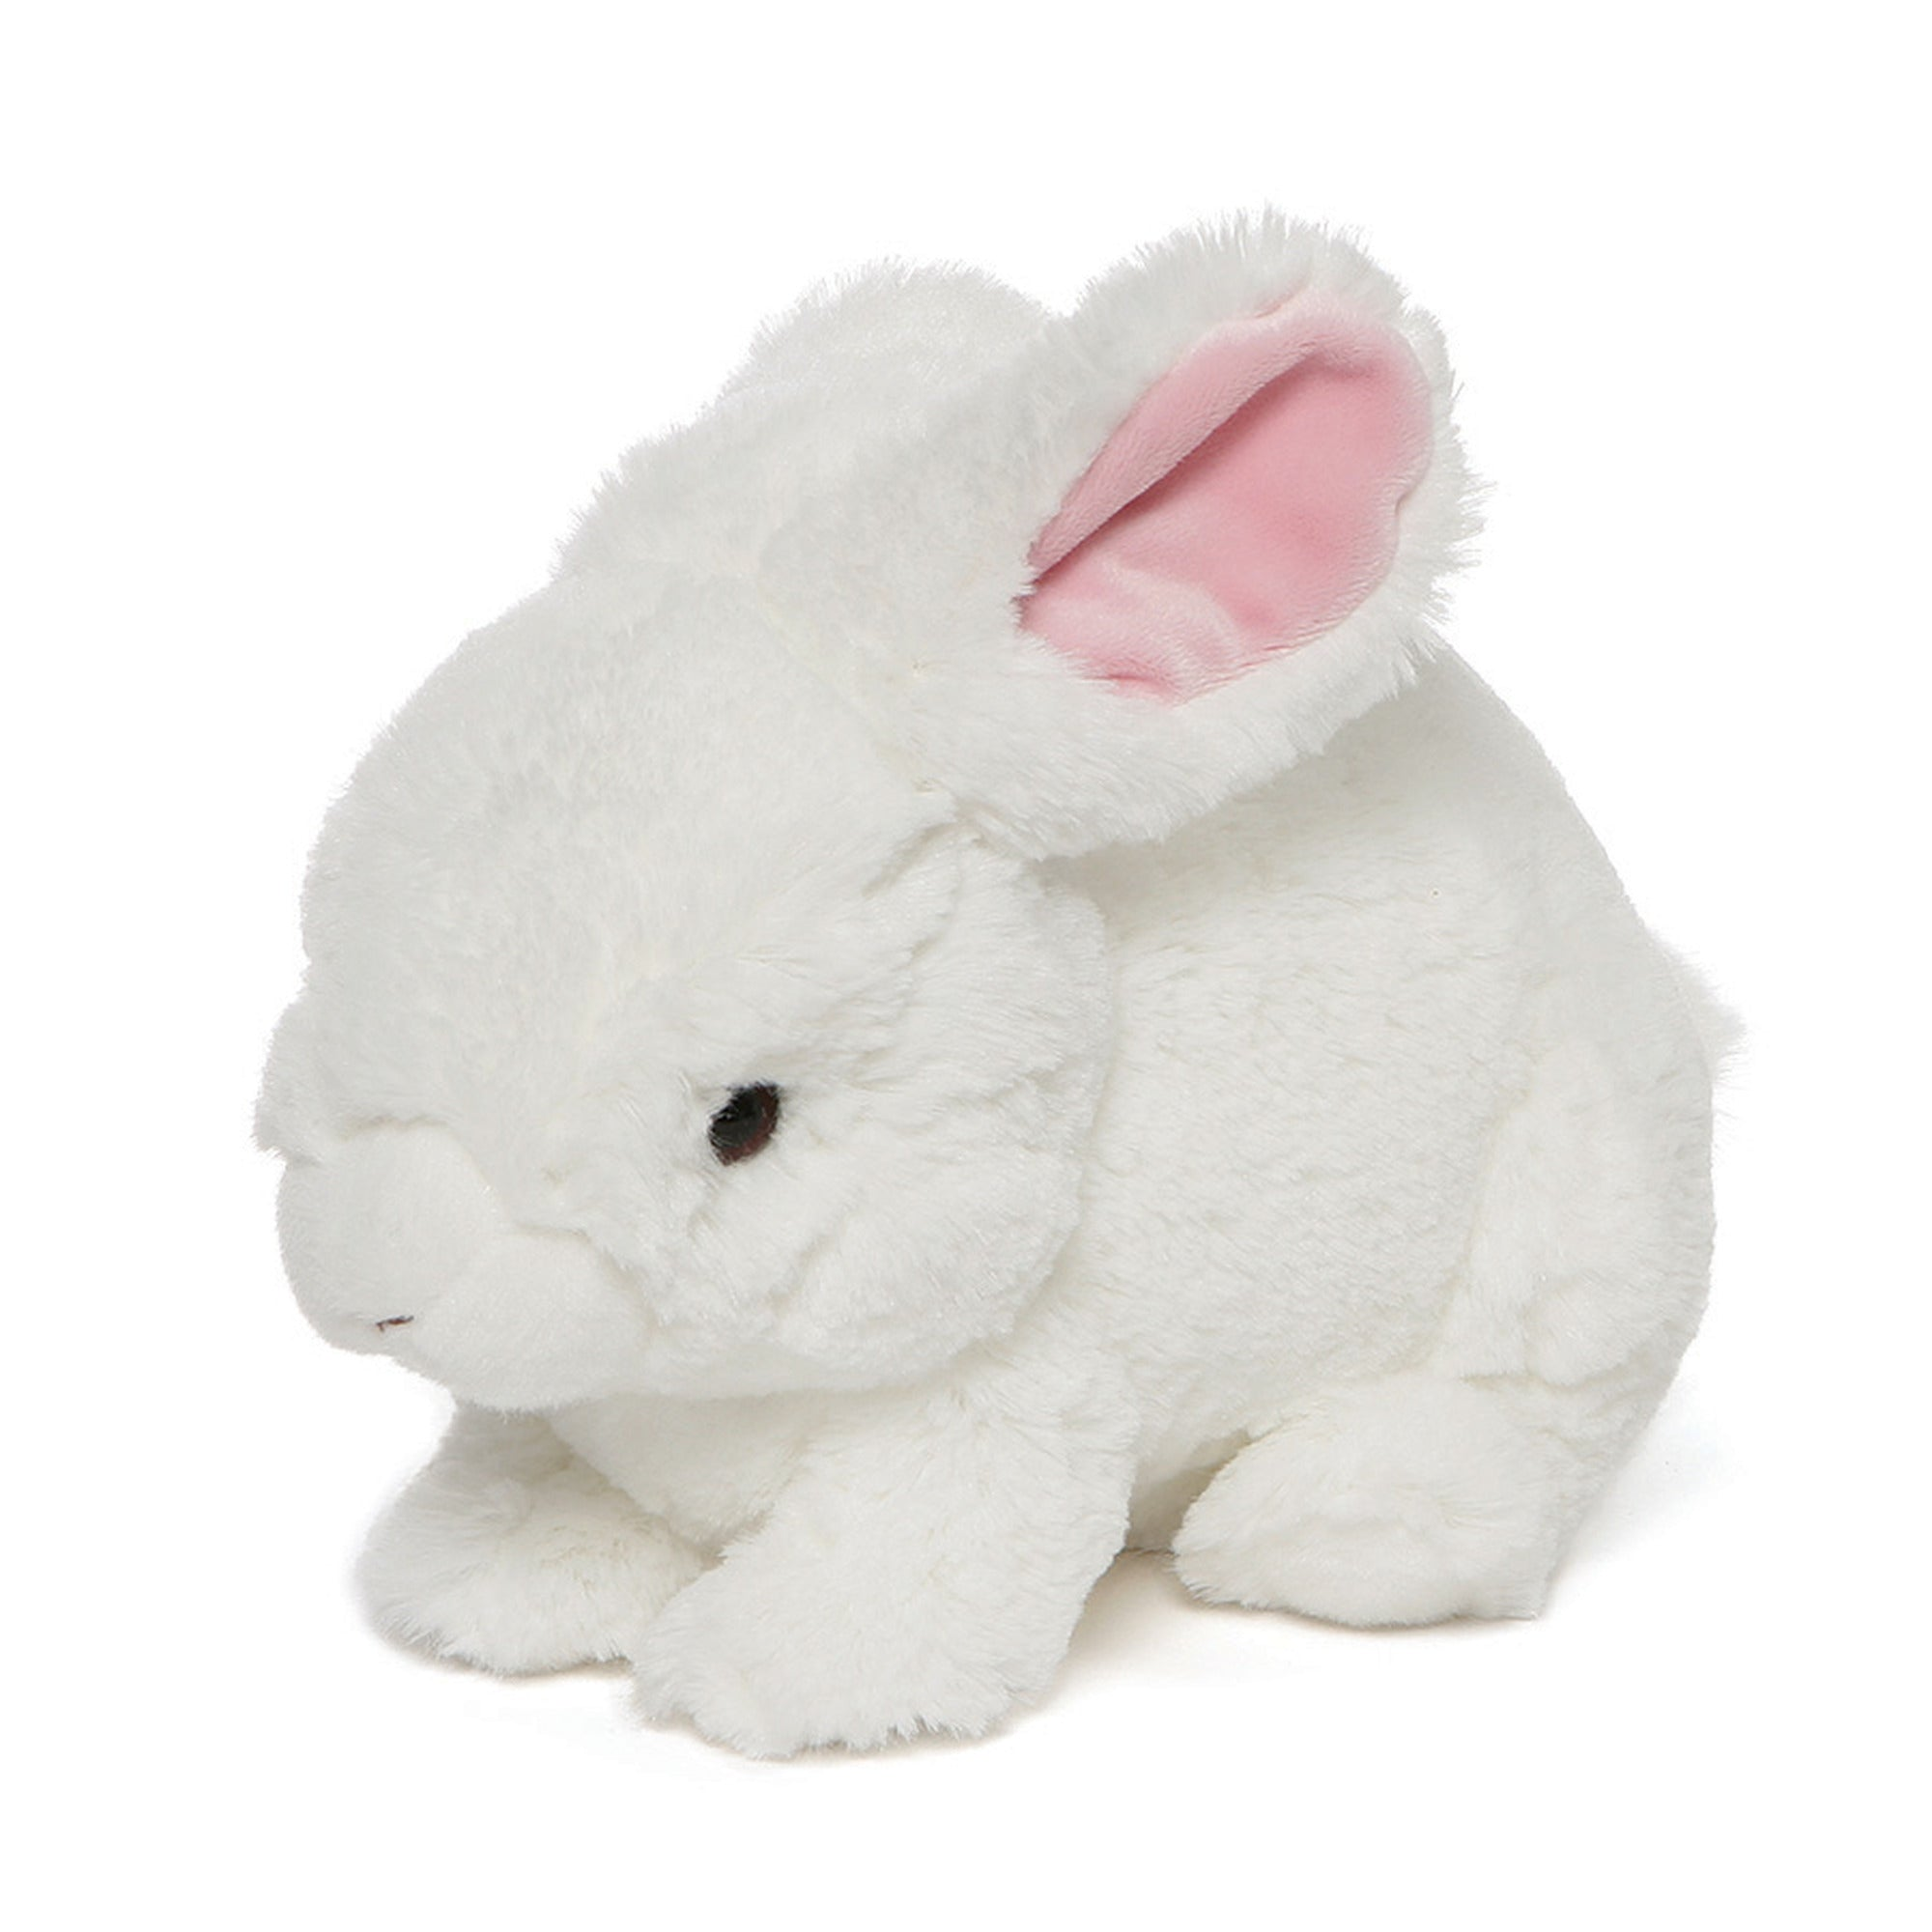 Gund - Whispers White Rabbit - 12""